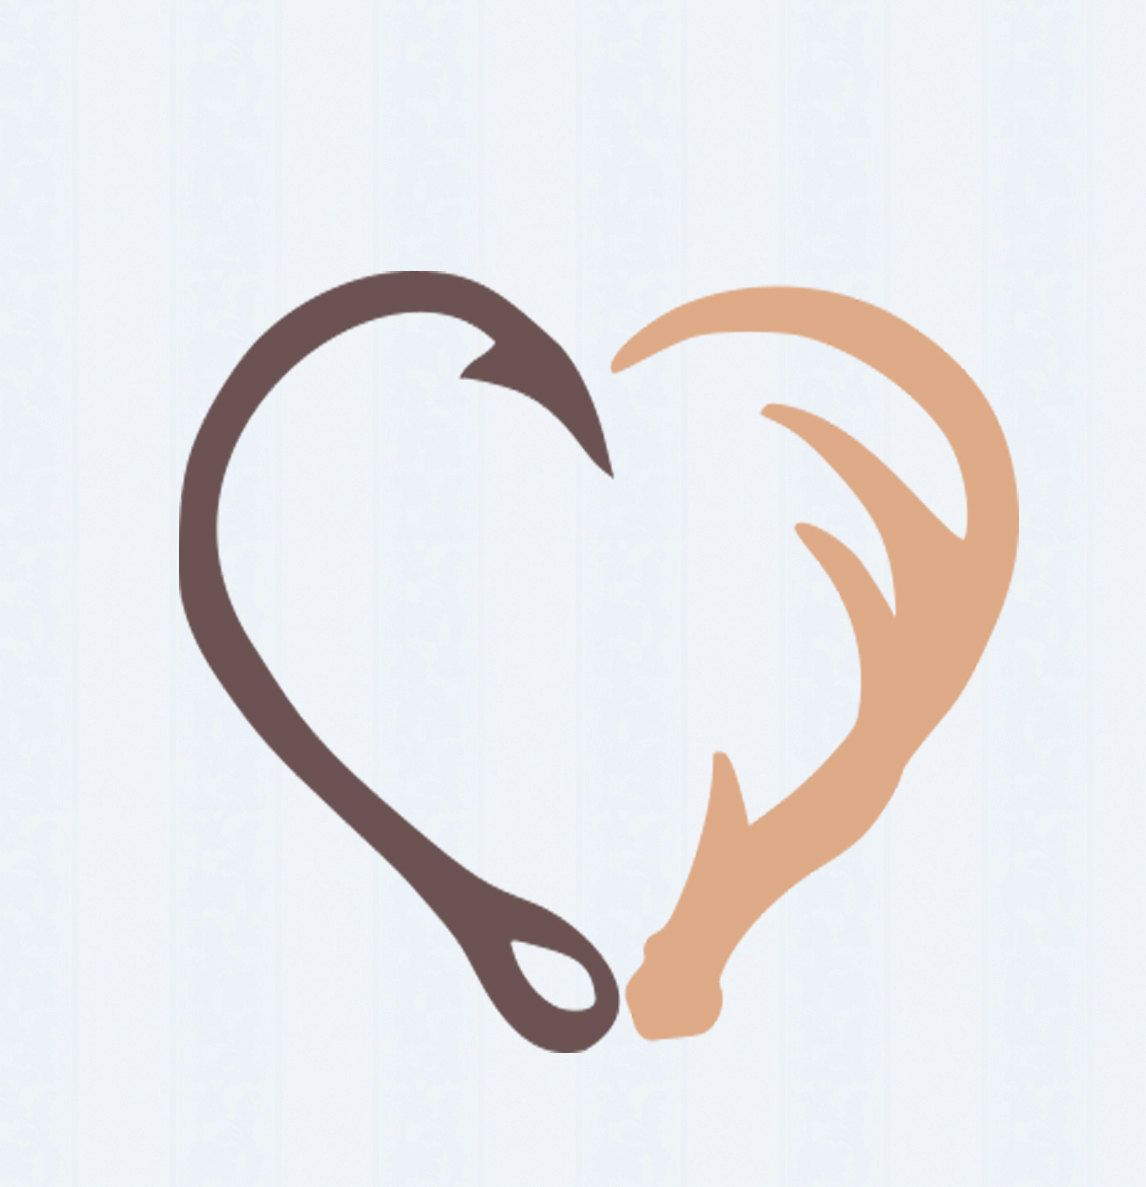 Antler clipart fish hook. Interlocking and svg heart